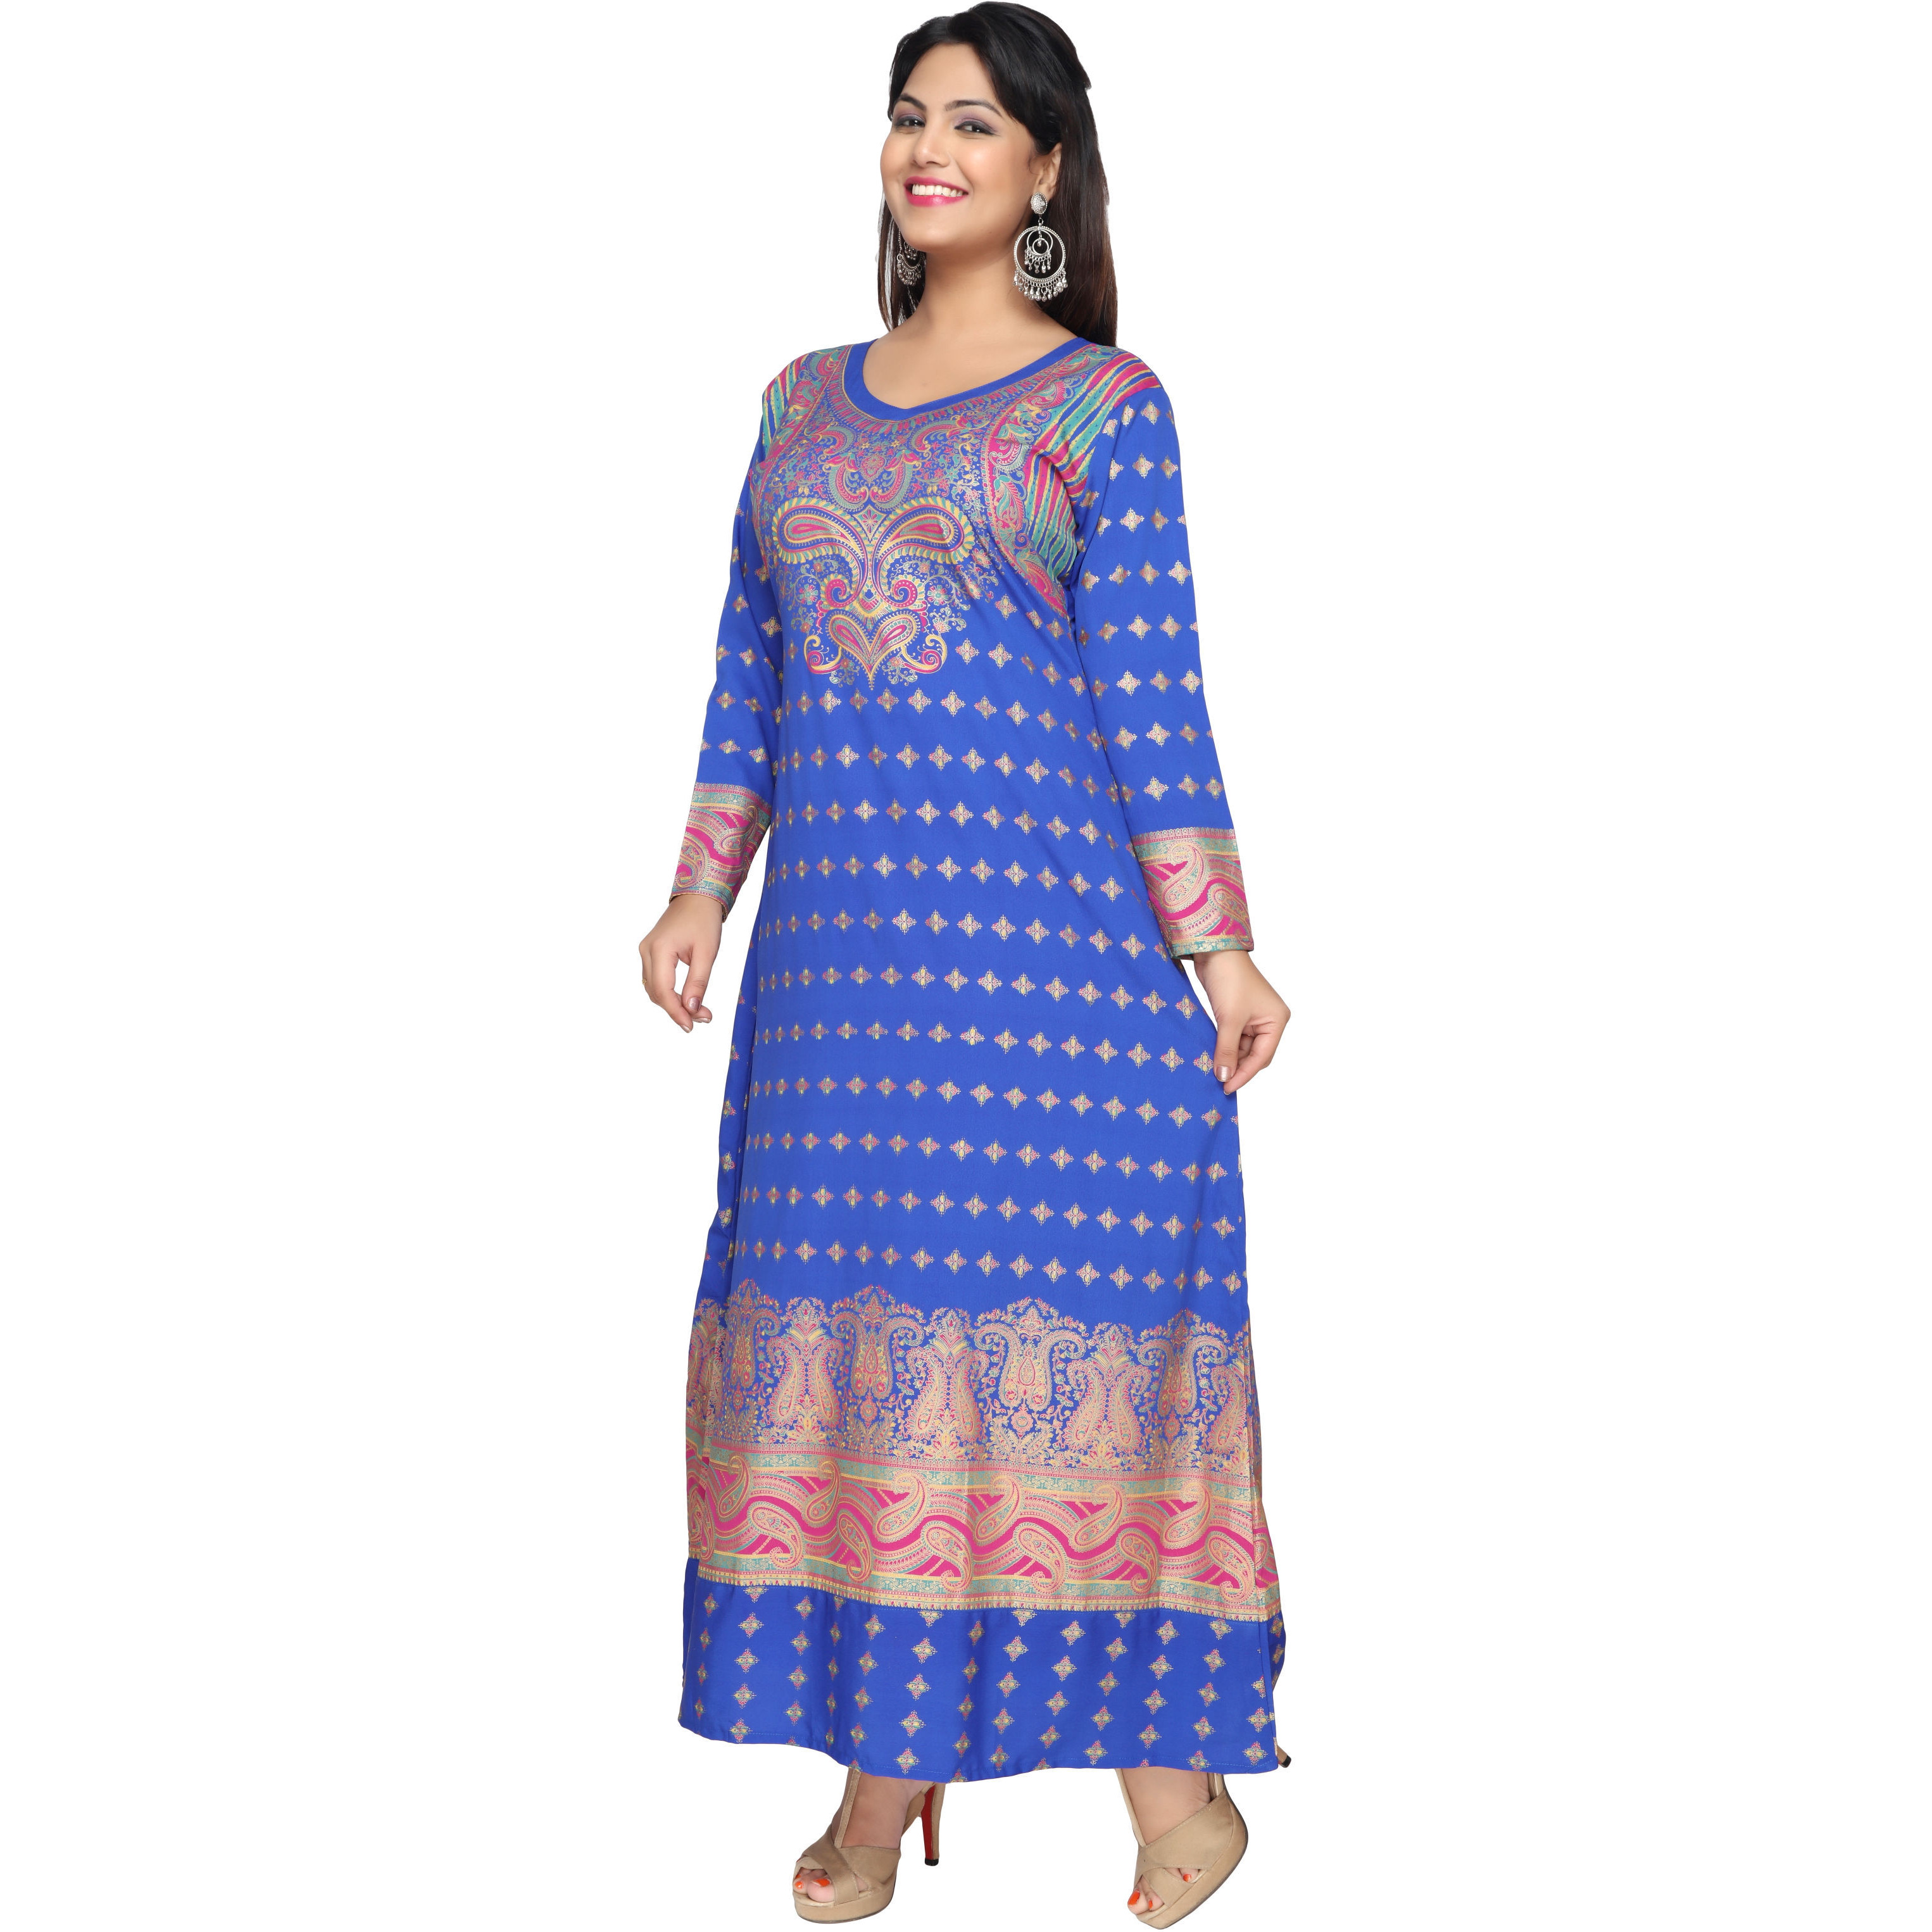 TrendyFashionMall Gold Print Kaftans Maxi Dresses with design in Front and Back (Color:TFMKFT01023-BLUE, Size:42 - LARGE)